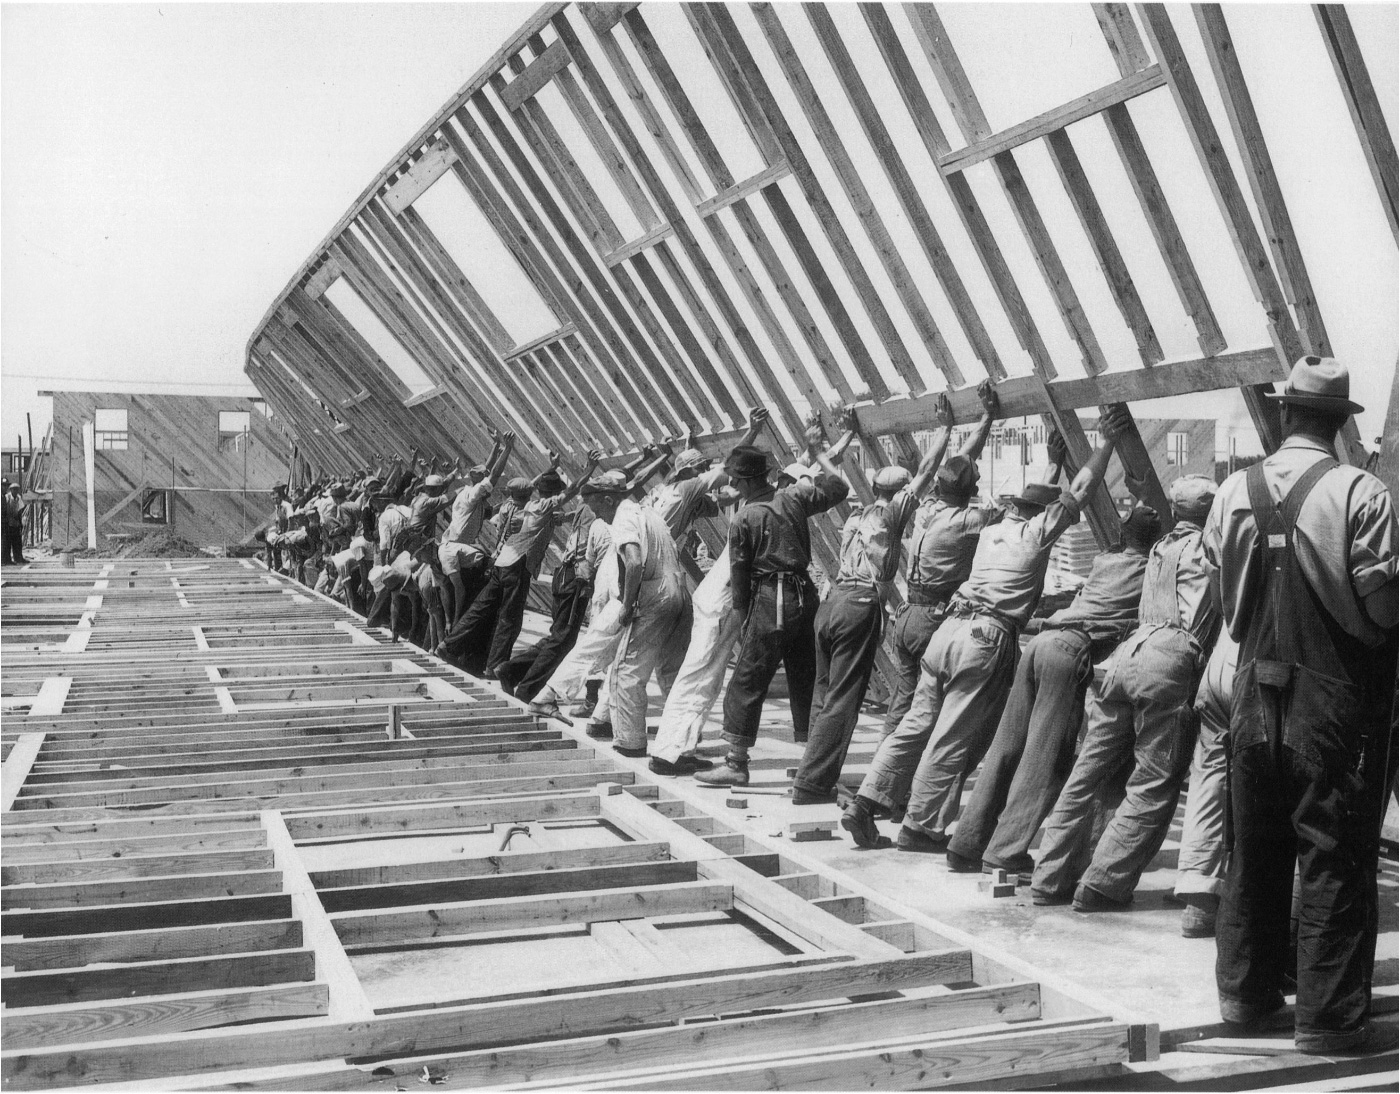 Black and white photo of men working together to raise a wood frame